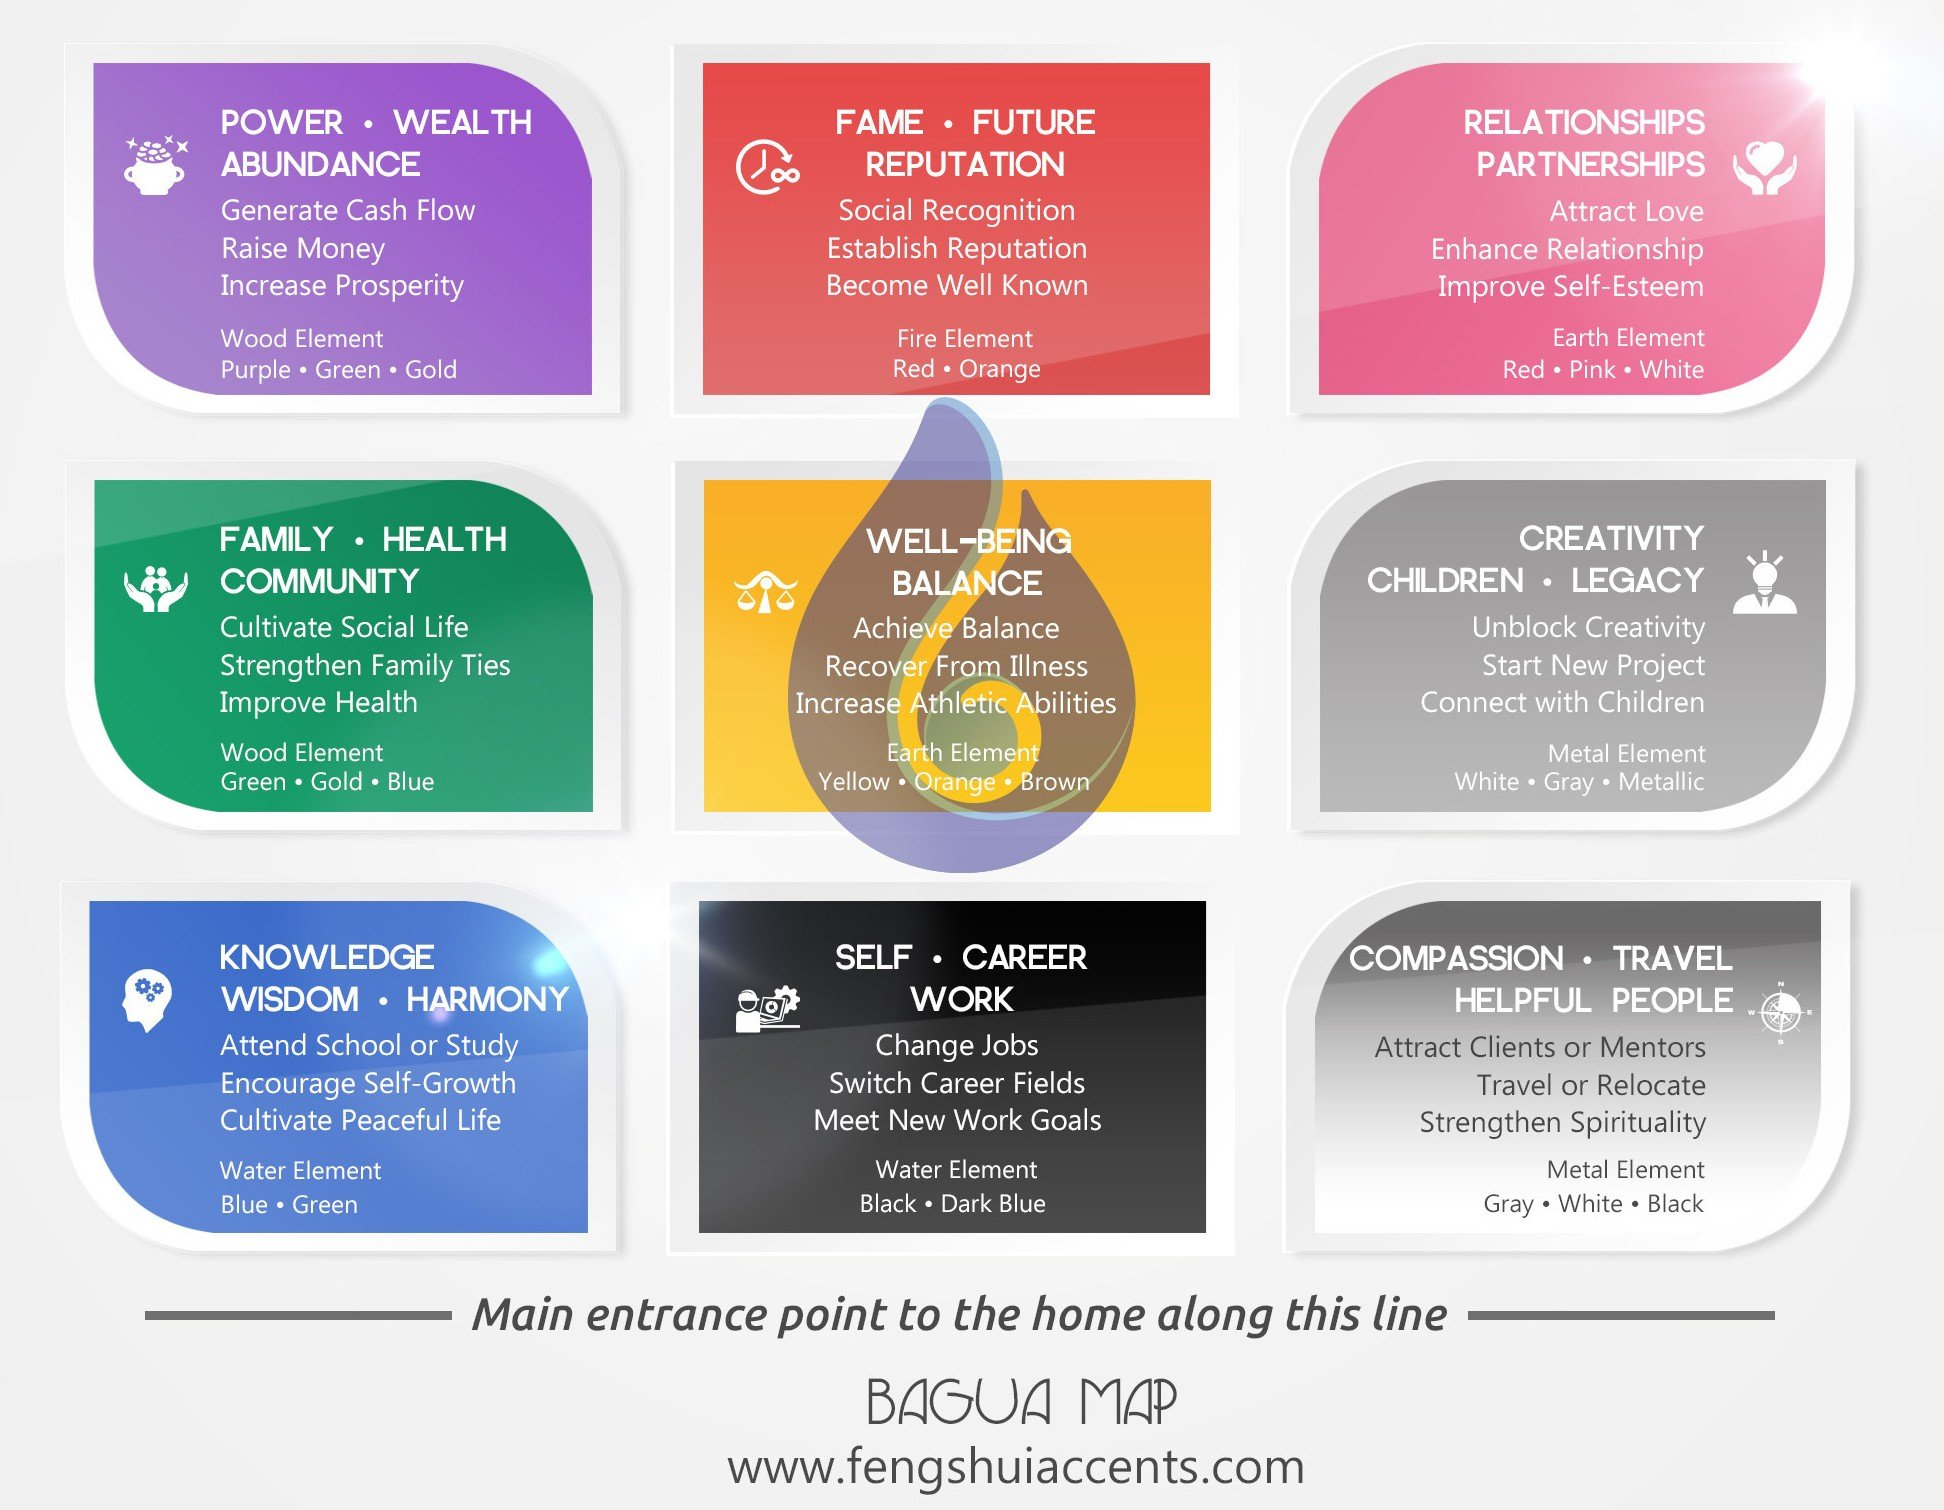 Modern_Bagua_Map_-_FengShui_Accents